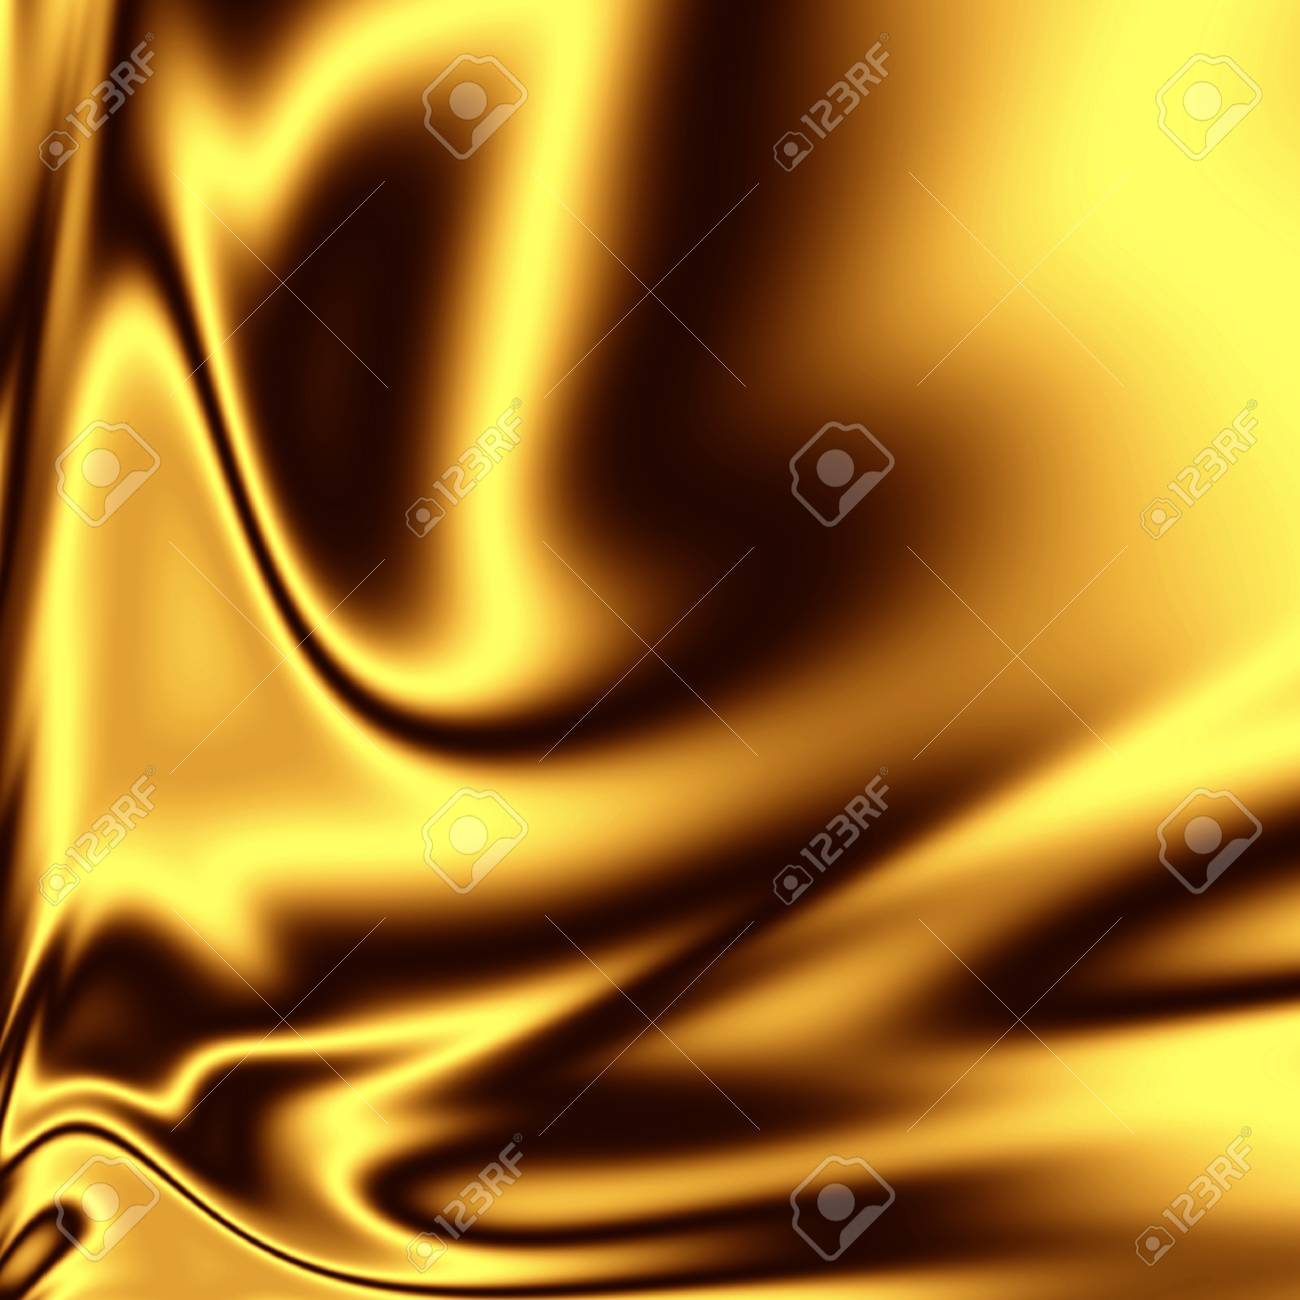 Texture Gold Abstract Art Wallpaper Modern Design